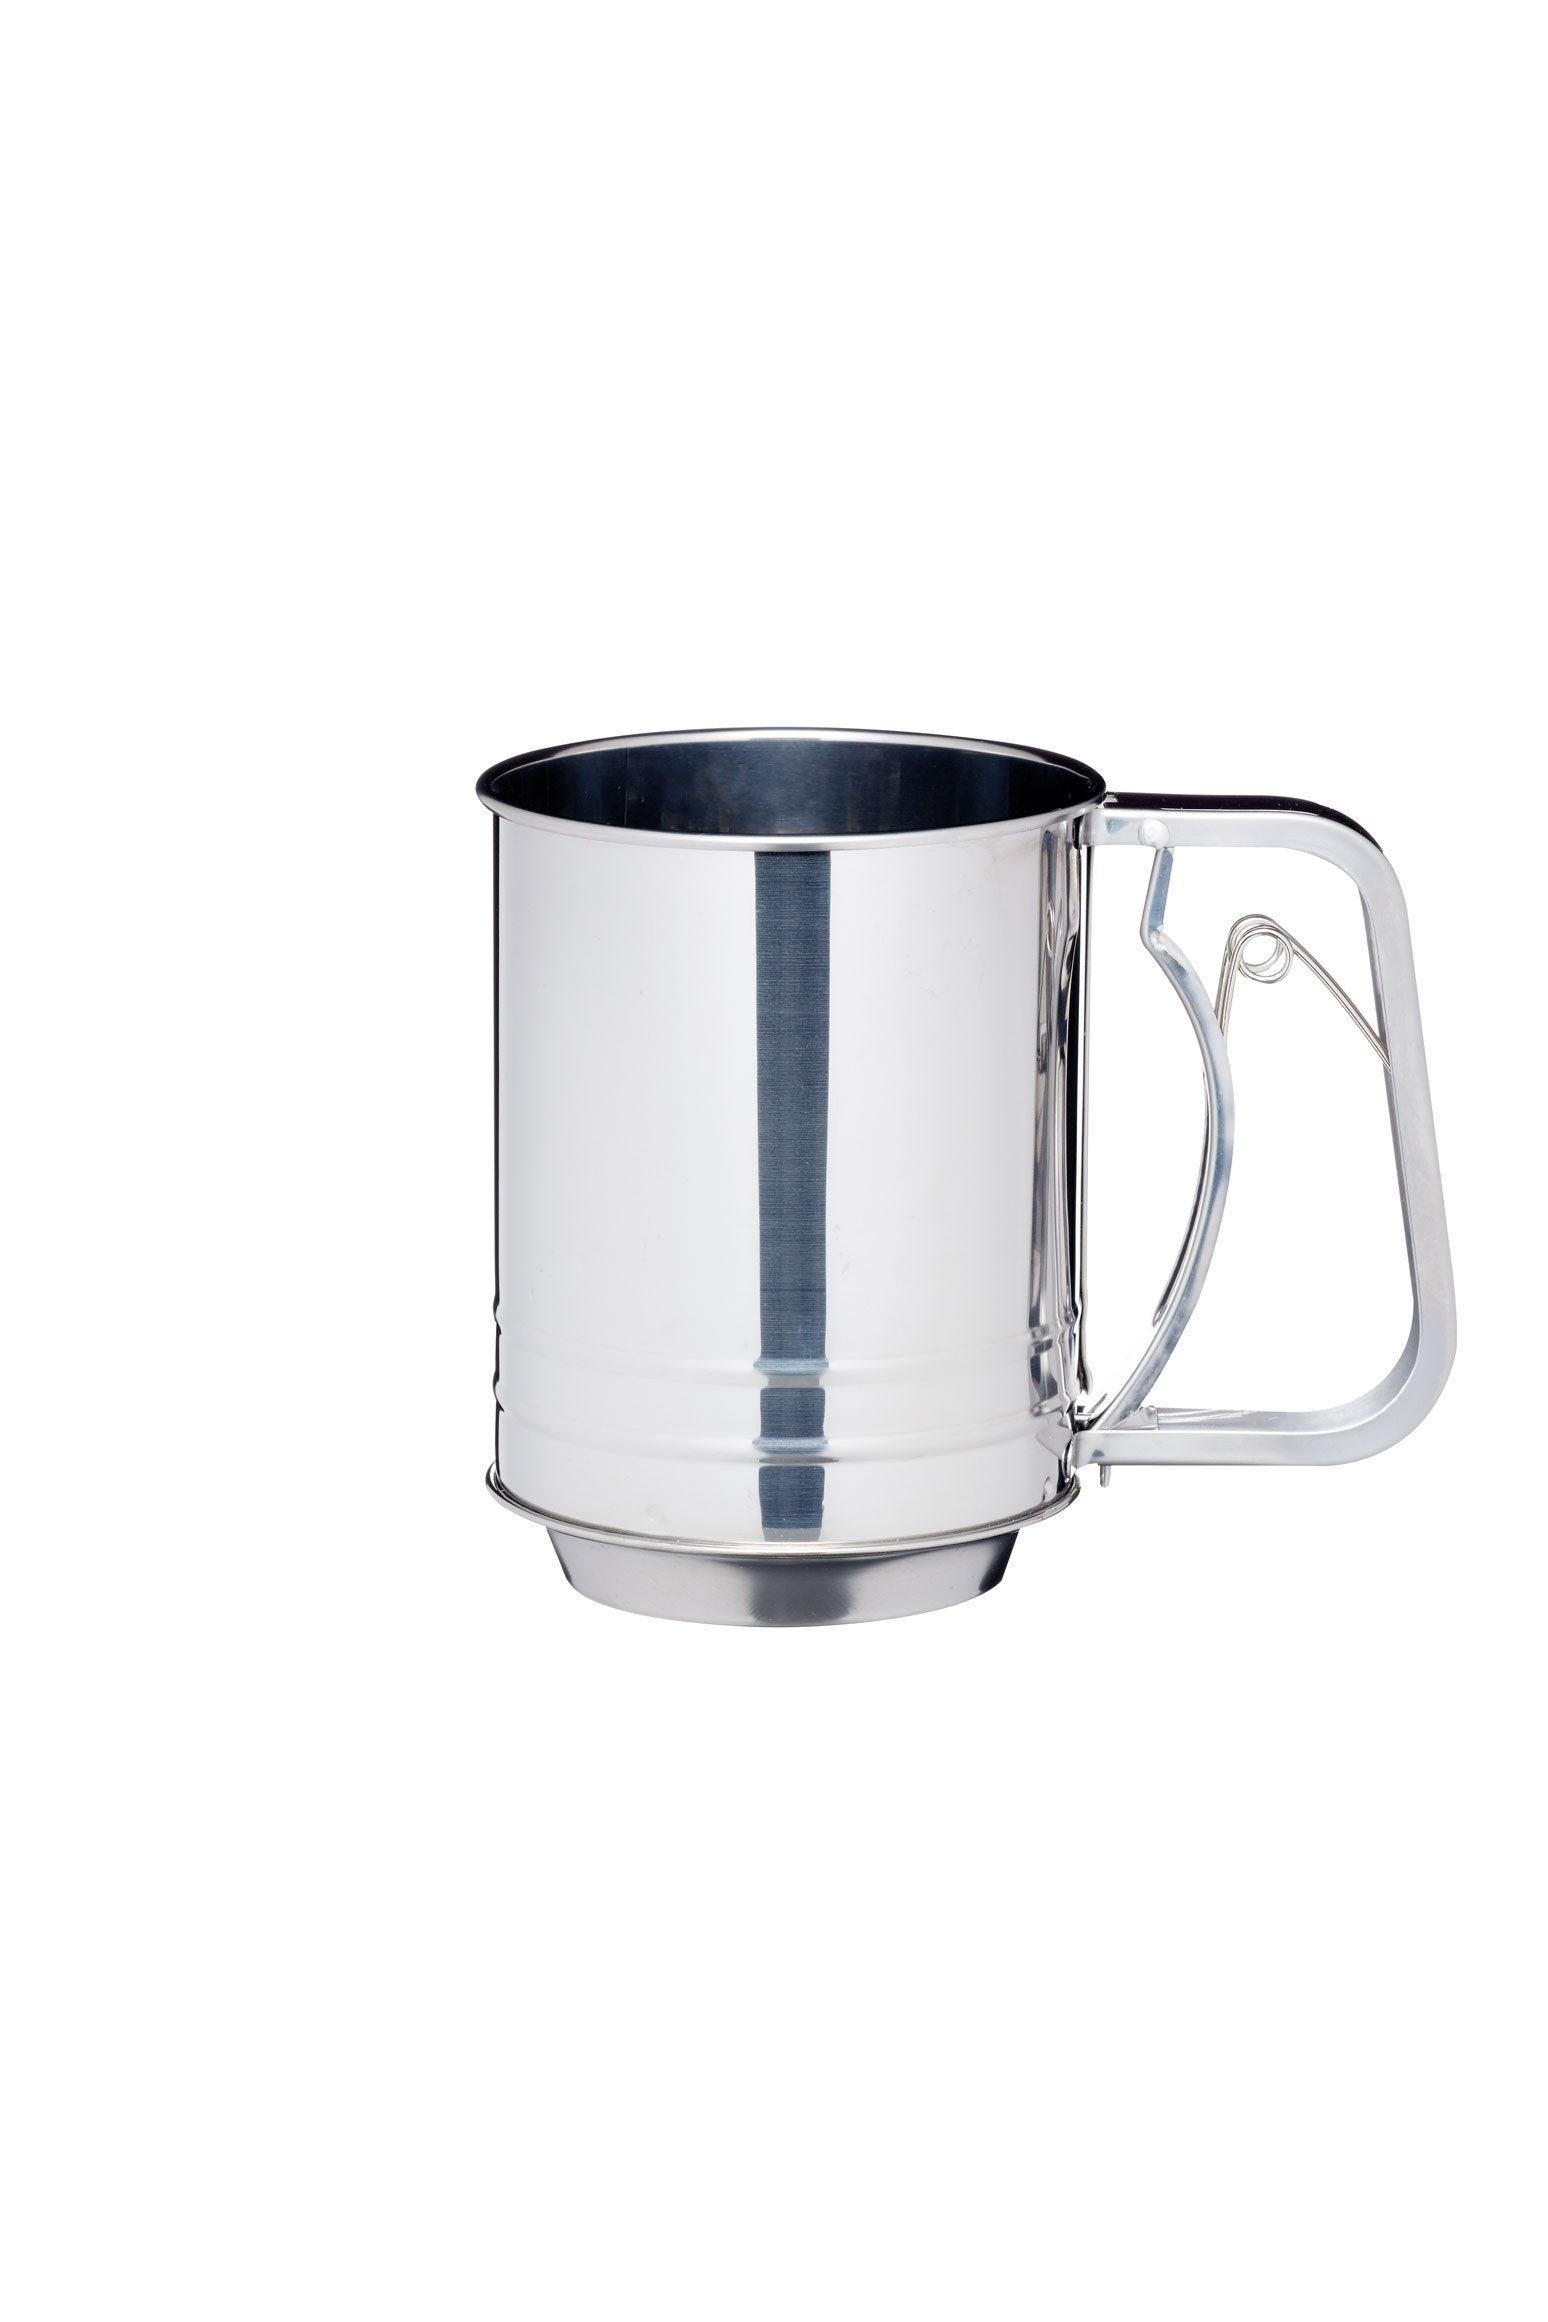 KitchenCraft Stainless Steel Three Cup Trigger Action Flour Sifter